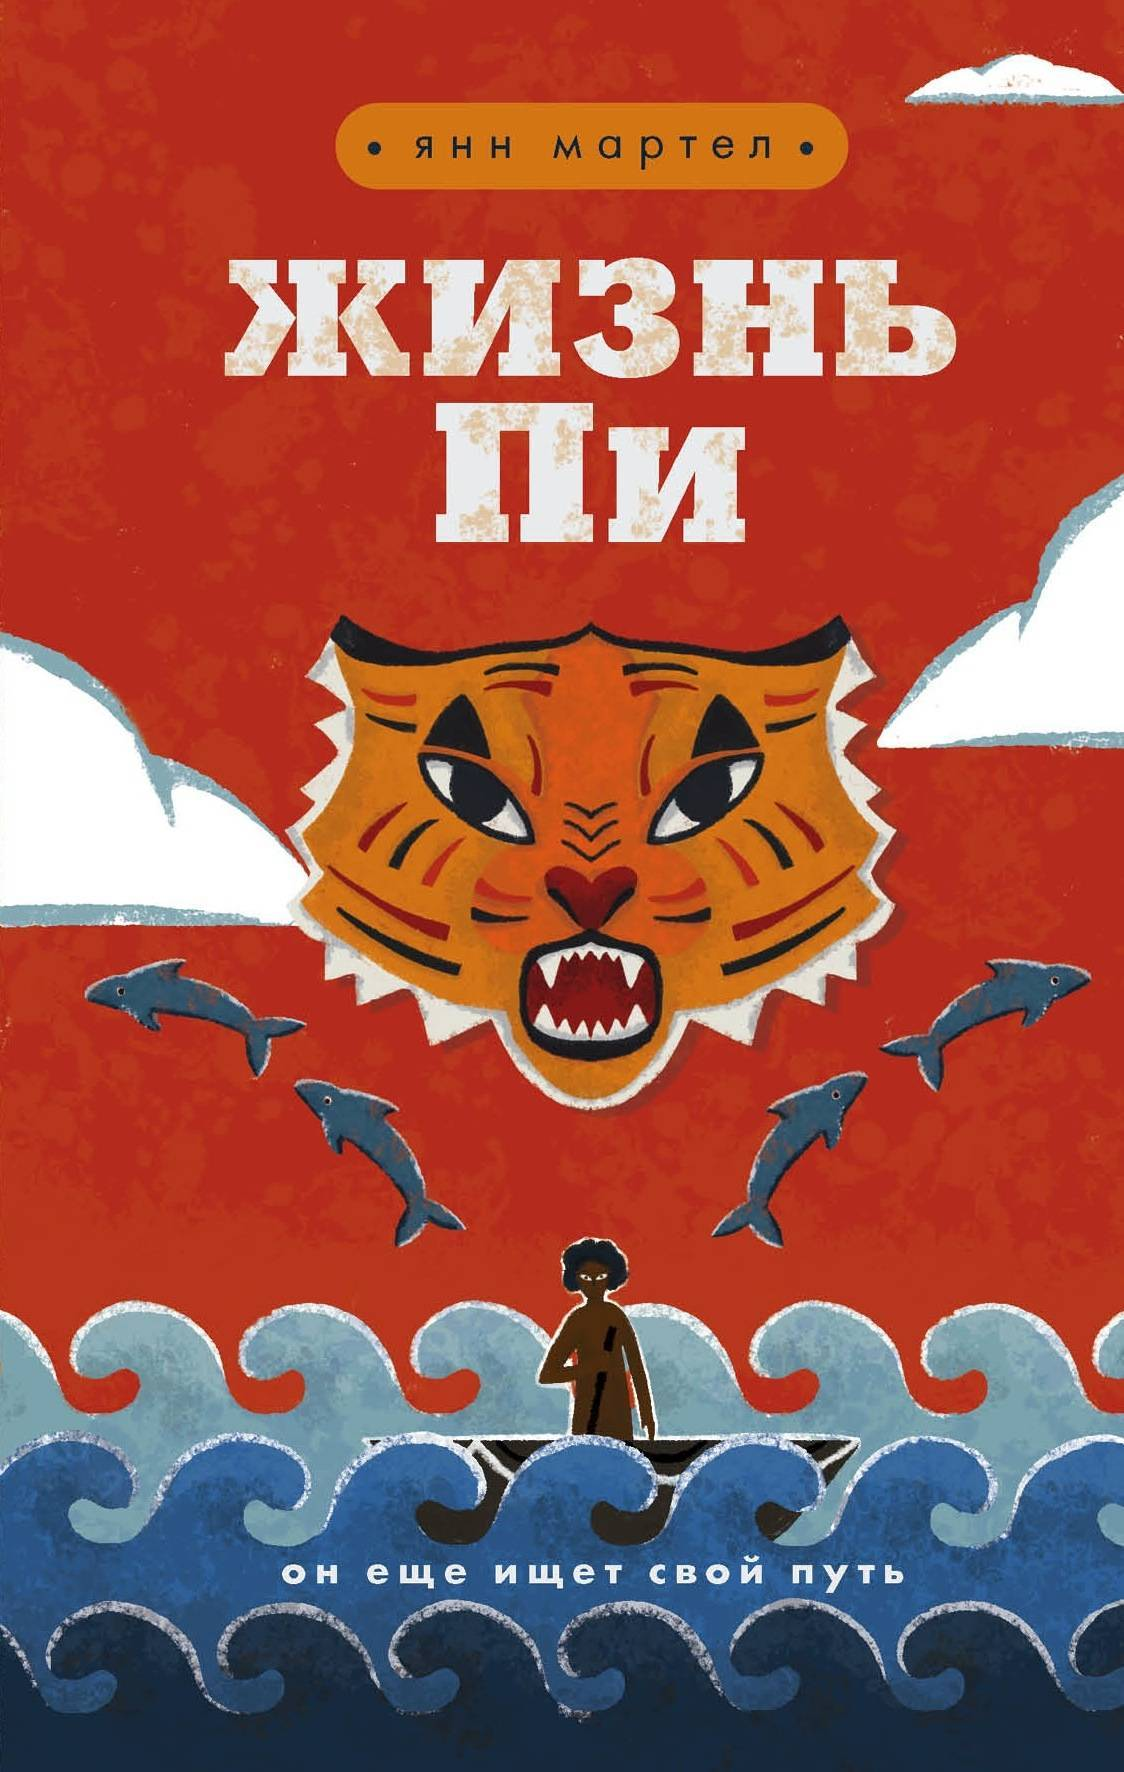 an analysis of pis fears in the novel life of pi by yann martel Life of pi by yann martel teaching pi to care for, respect, and fear wild animals before your students read the novel life of pi.